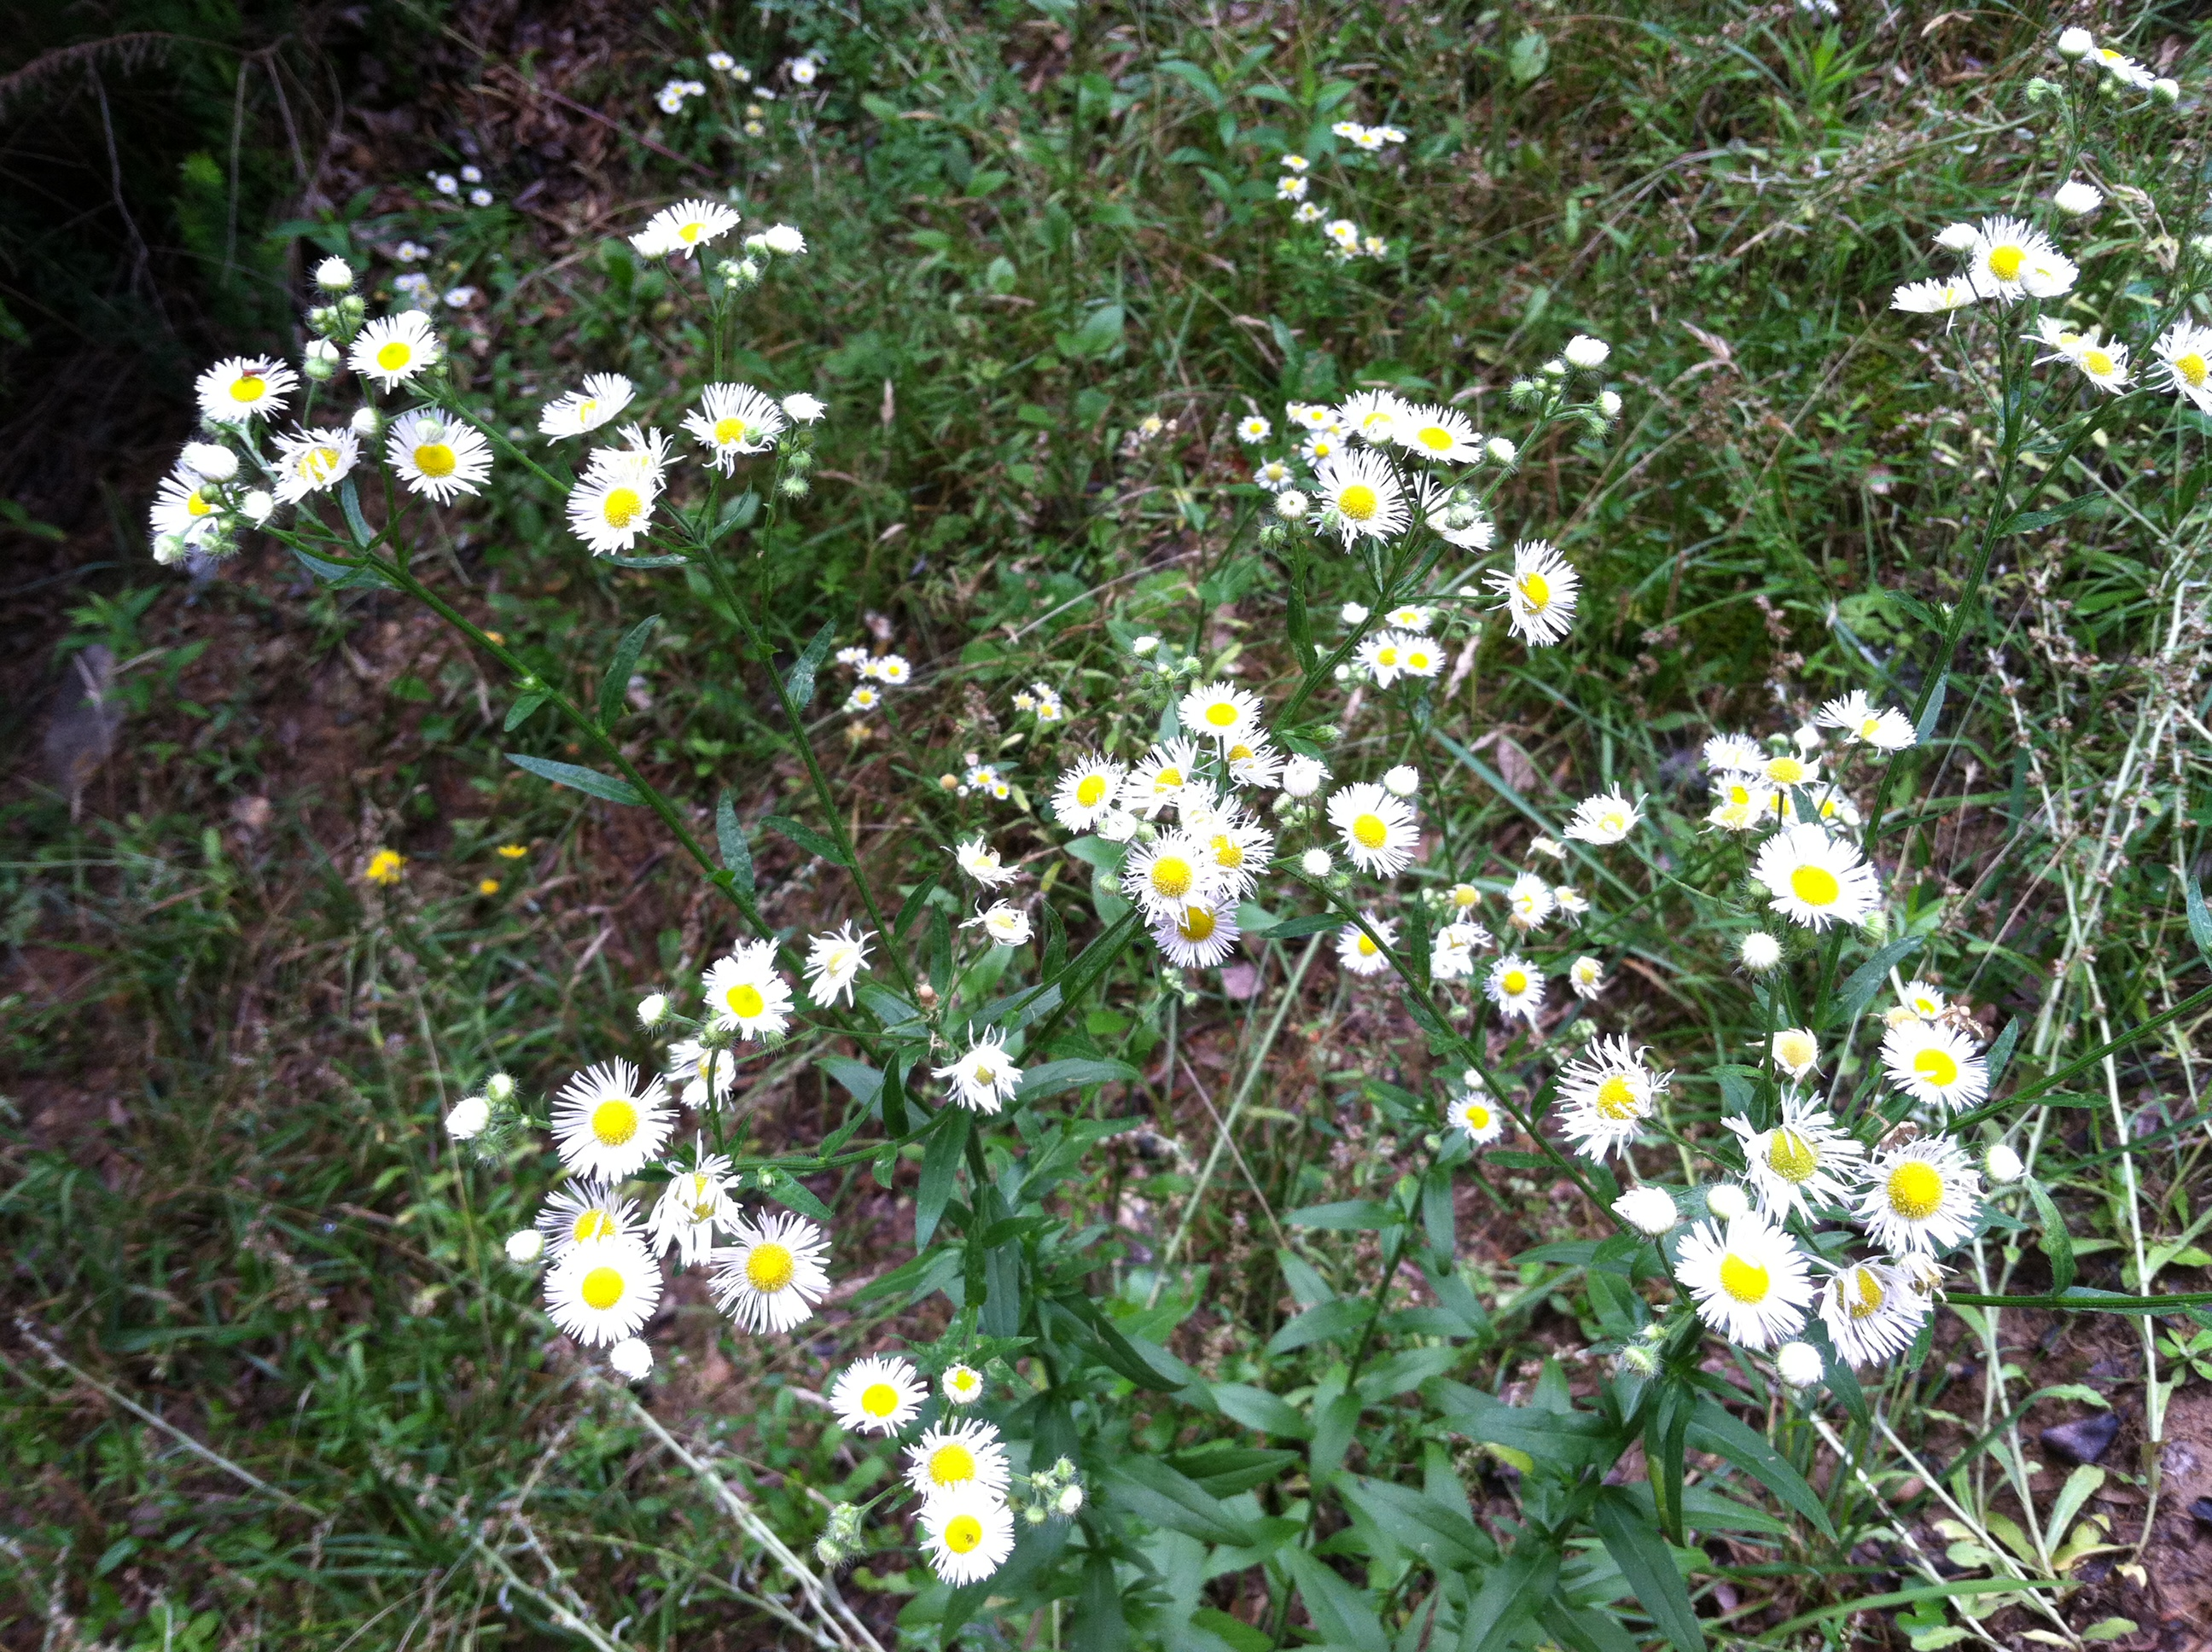 Plants into the woods collection of small daisy like flowers with many narrow white petals circled around a izmirmasajfo